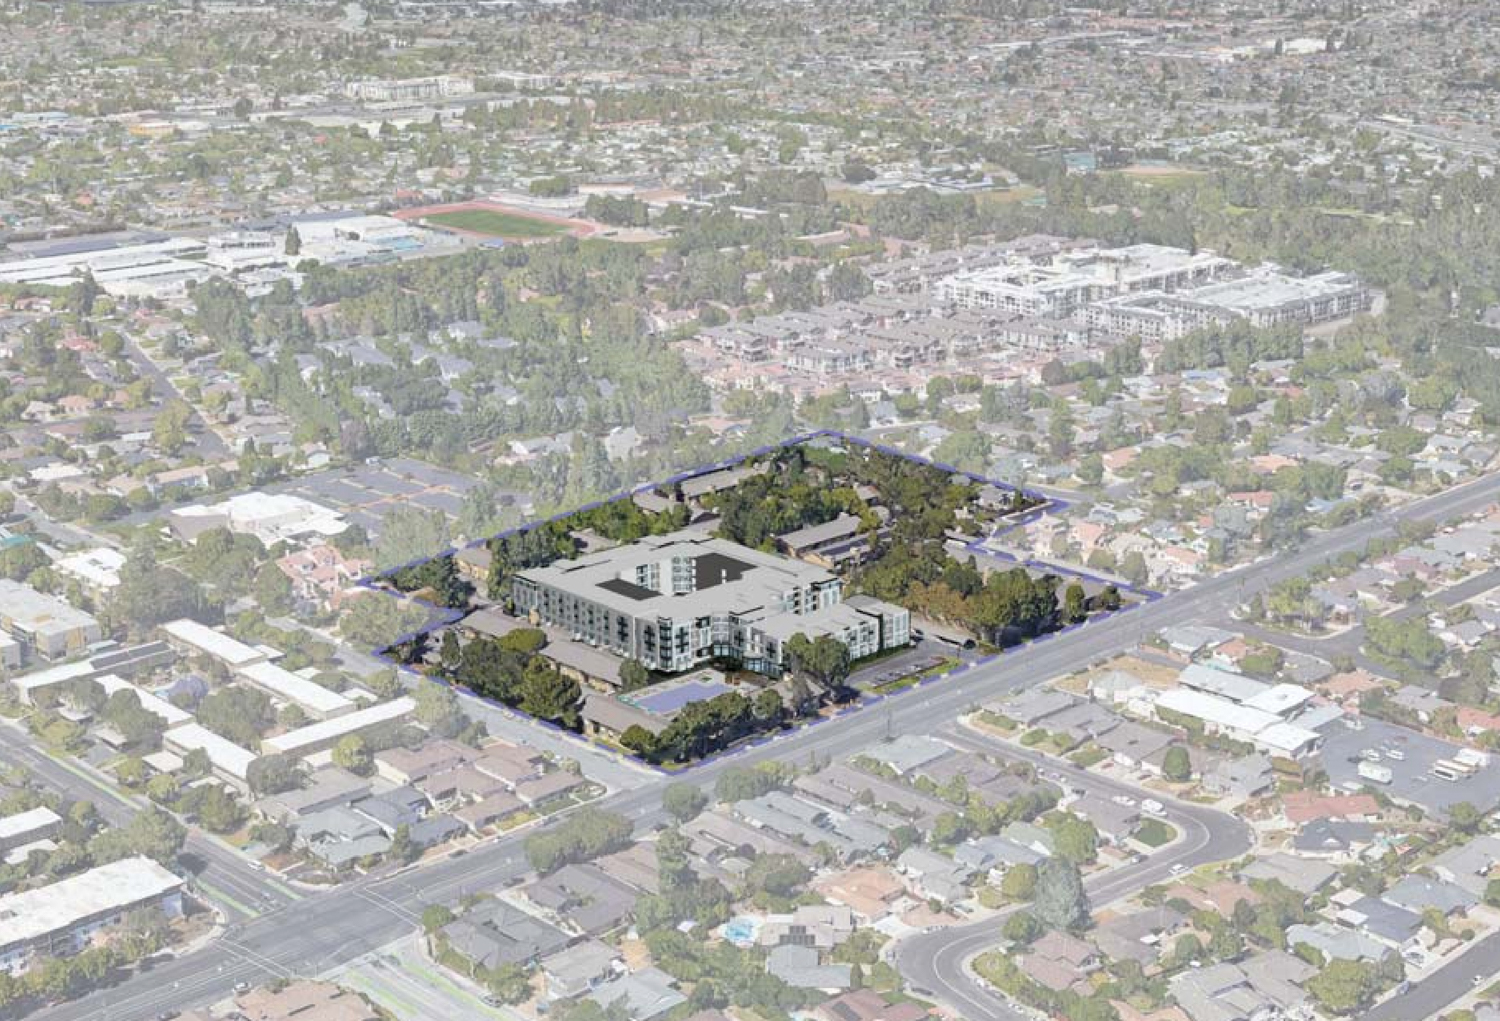 3131 Homestead Road proposal, birdseye view rendering by BDE Architecture